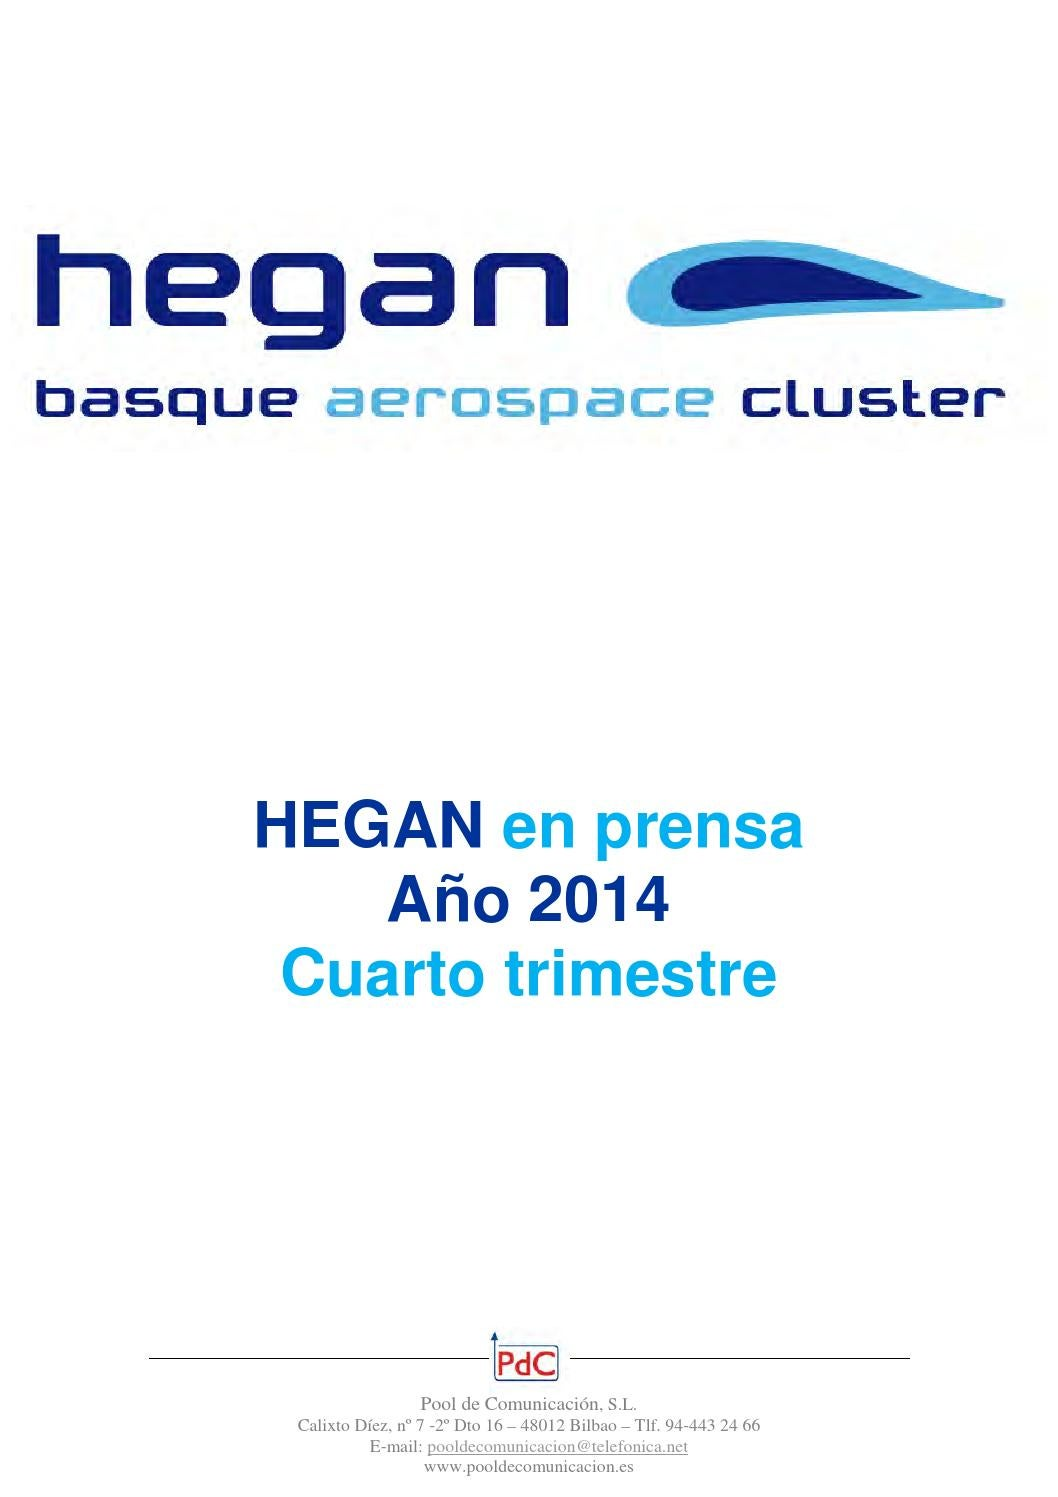 competitive price d30a9 5beac Hegan en prensa cuarto trimestre 2014 by Hegan Cluster - issuu